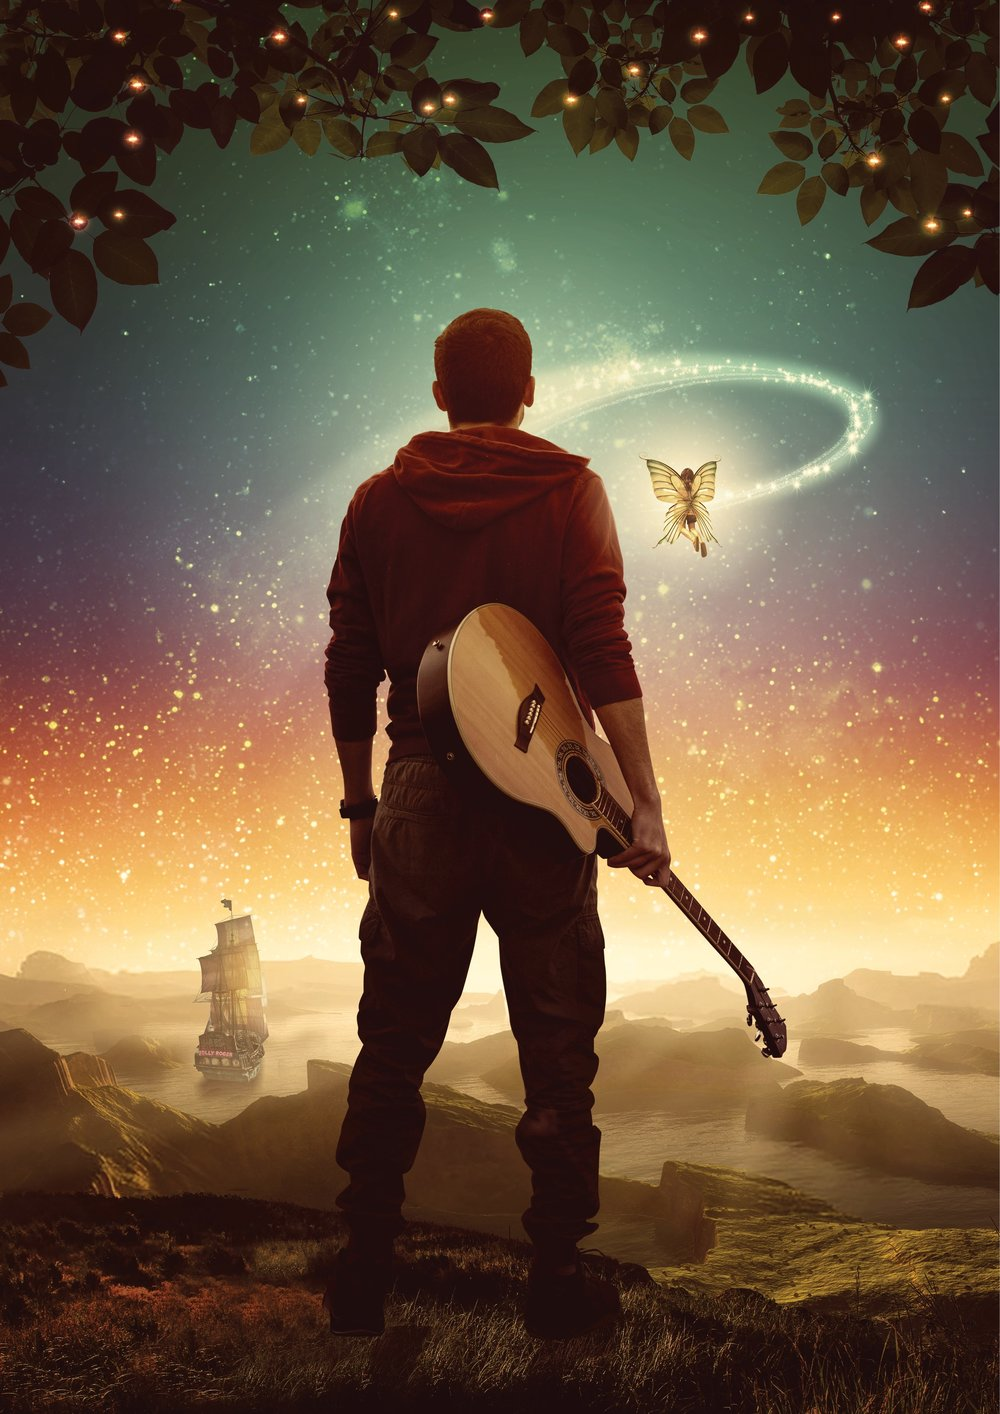 The Lost Boy Peter Pan to play at the Pleasance Theatre